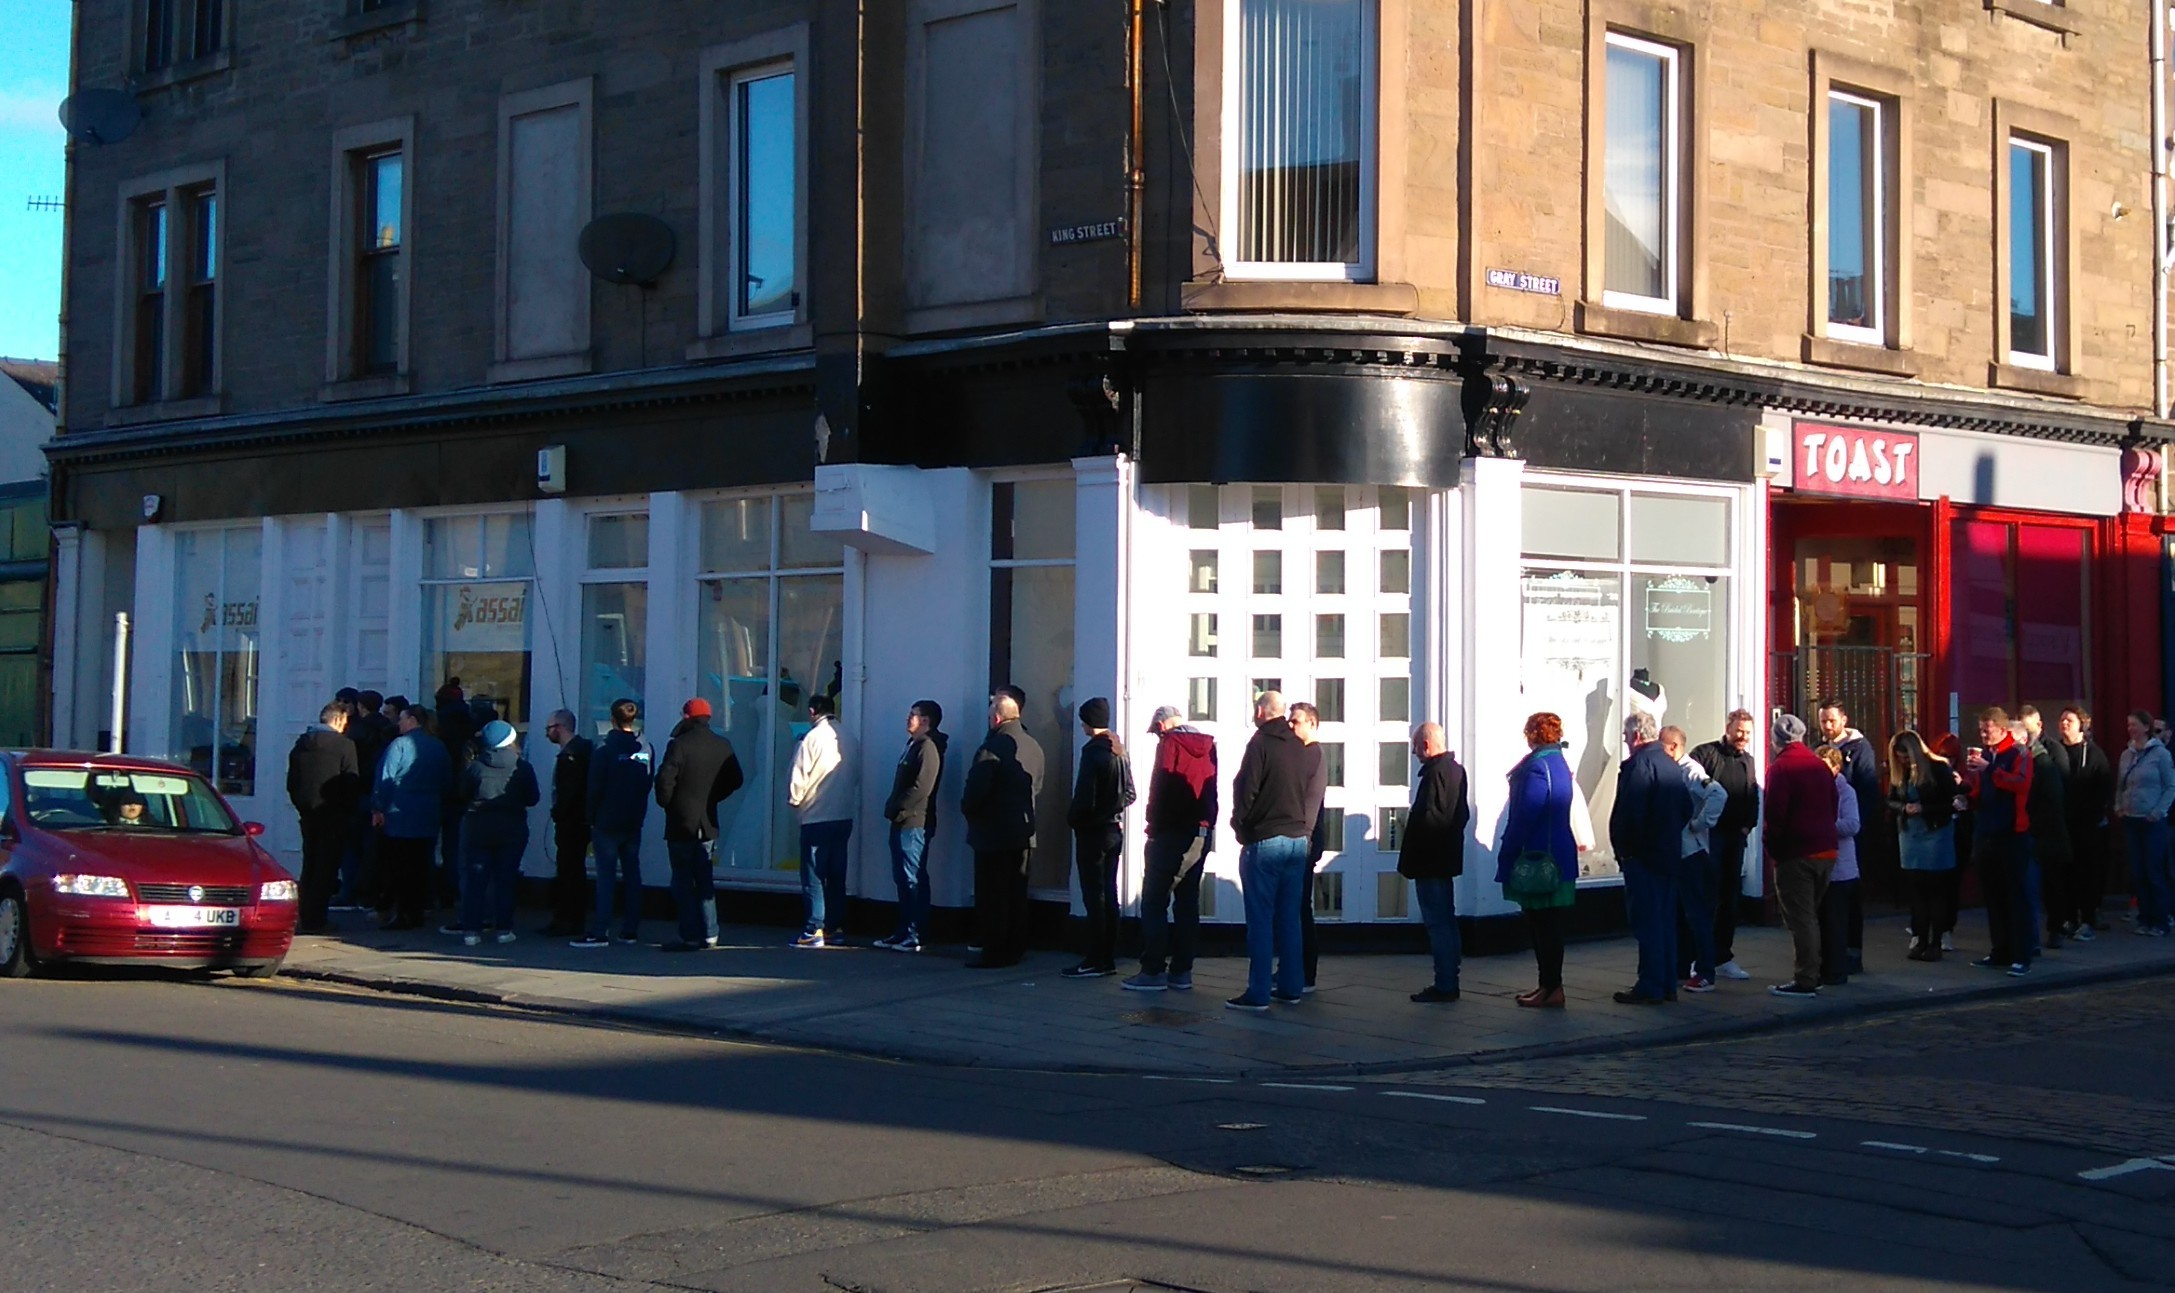 Vinyl fans queuing up outside Assai in Broughty Ferry.